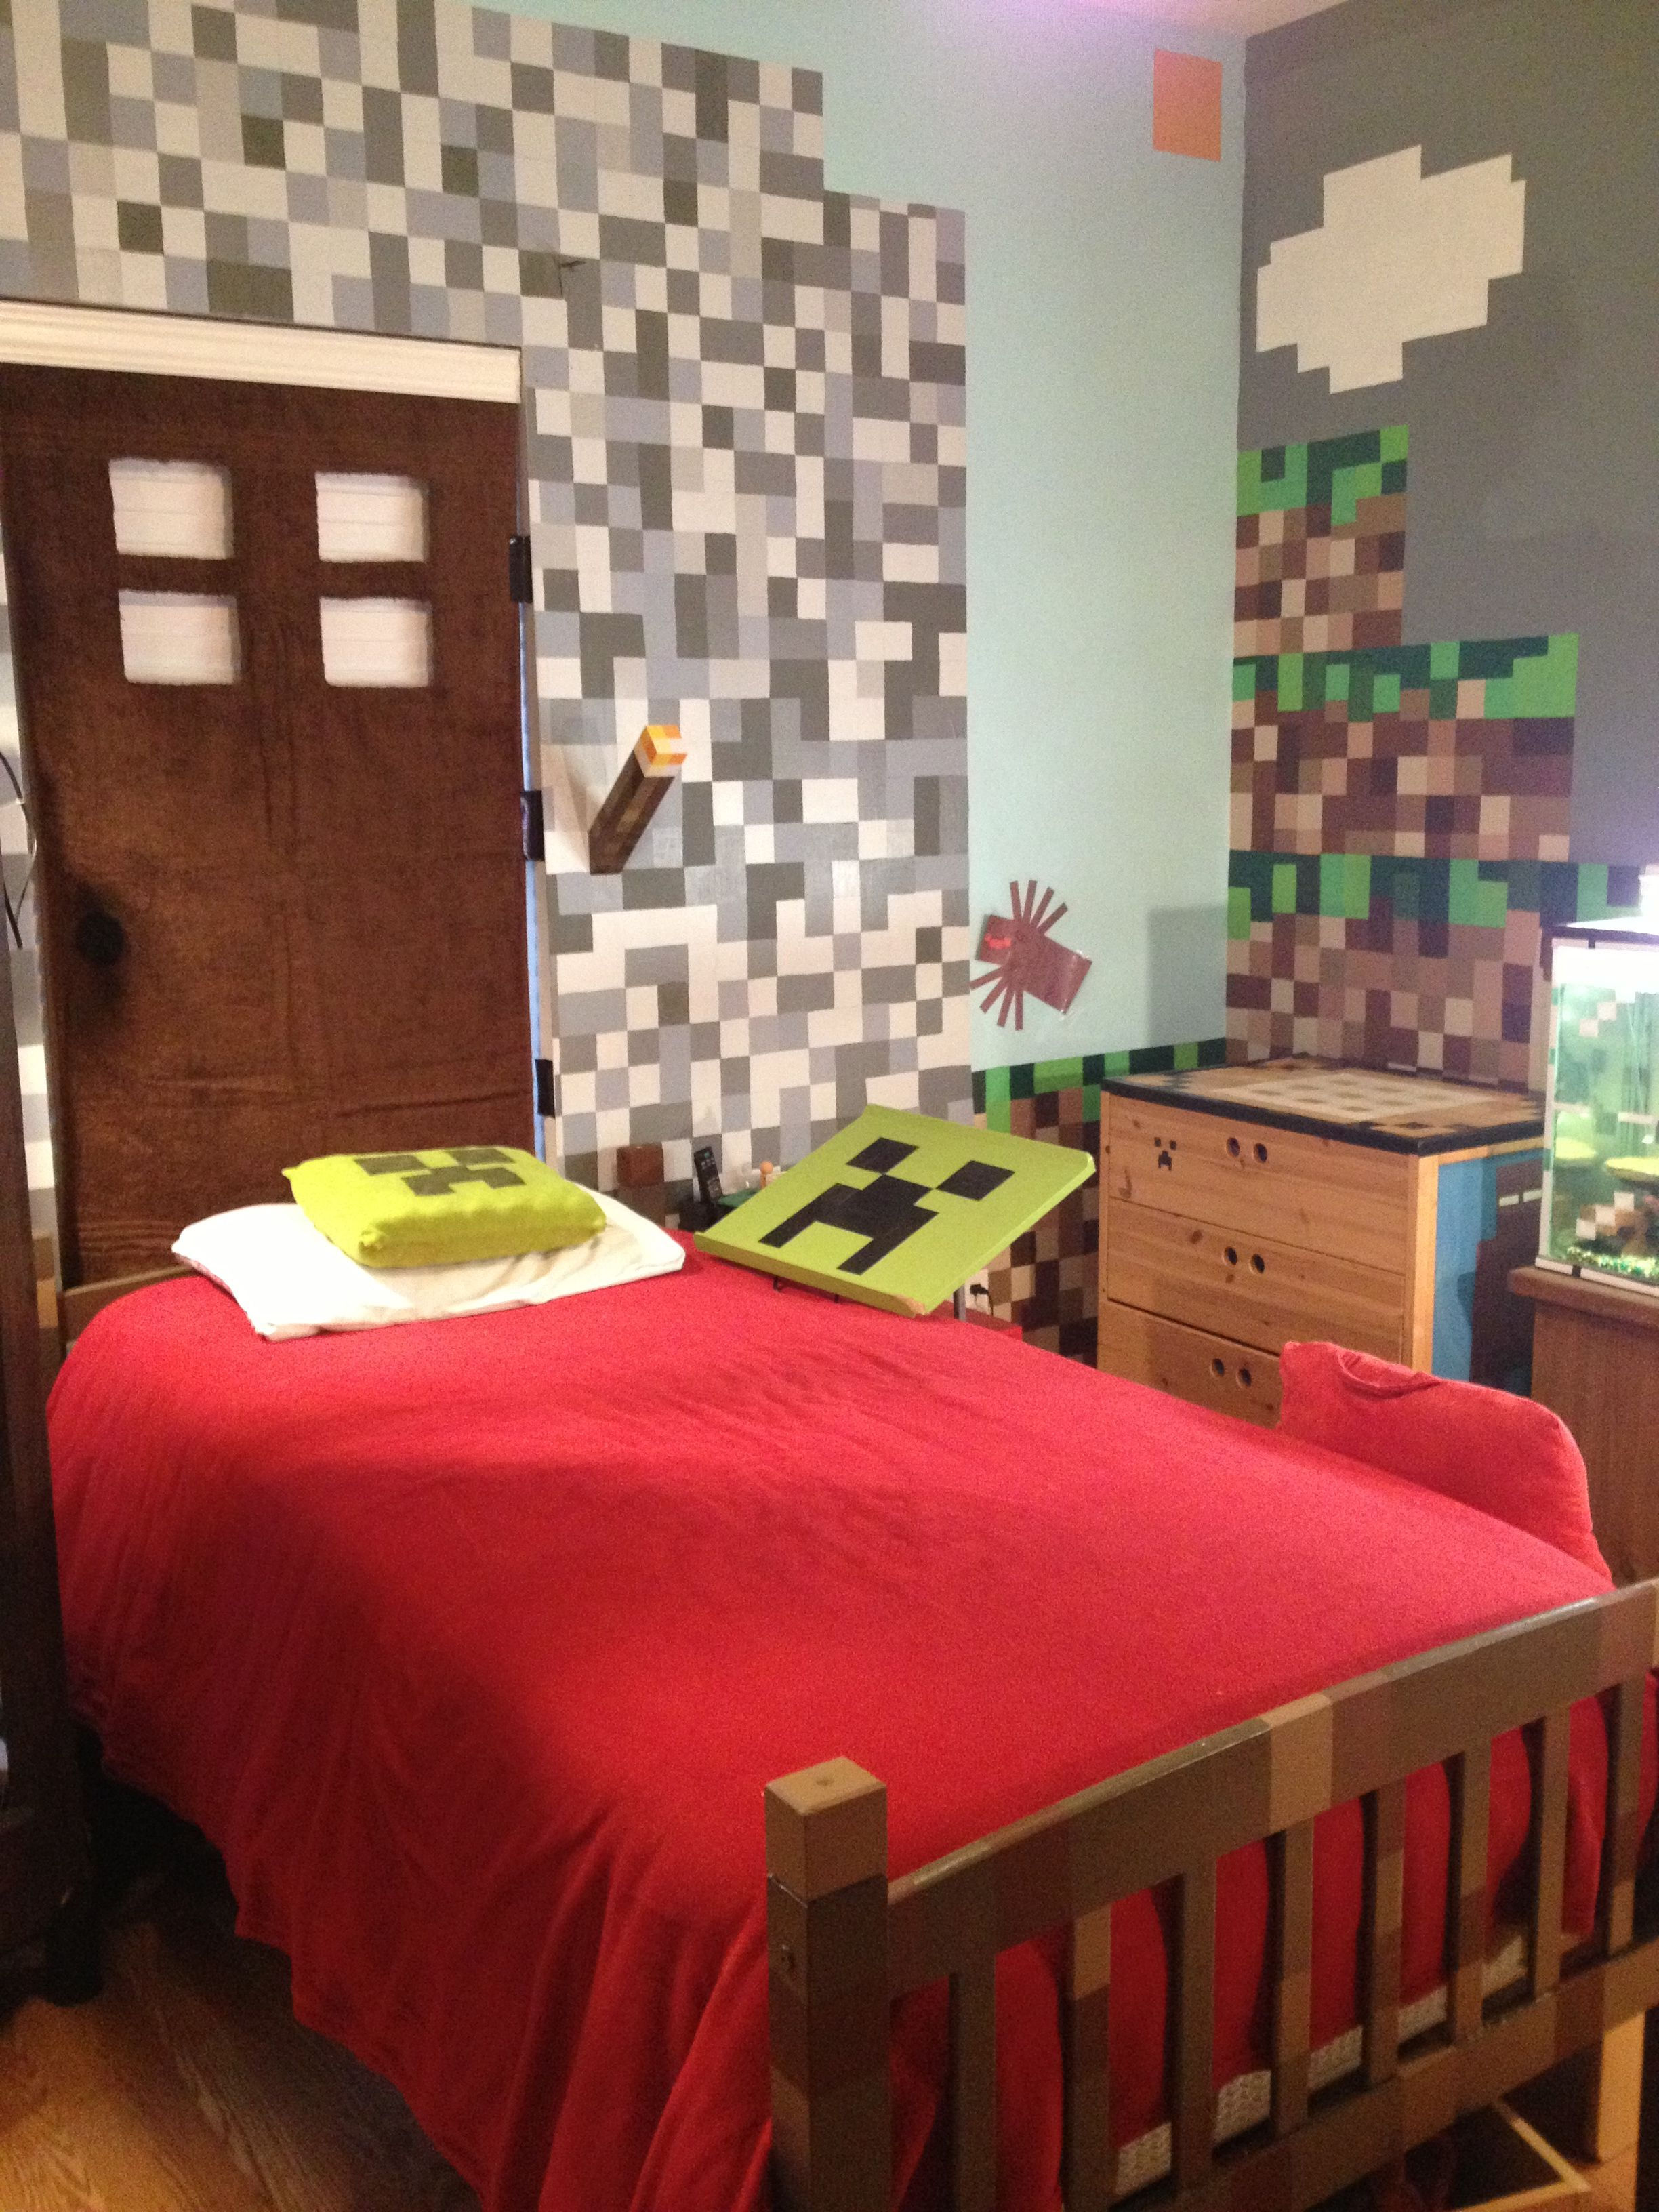 Stuff For Room Decor Minecraft Bedroom Could Do Pixel Walls With Vinyl Kid